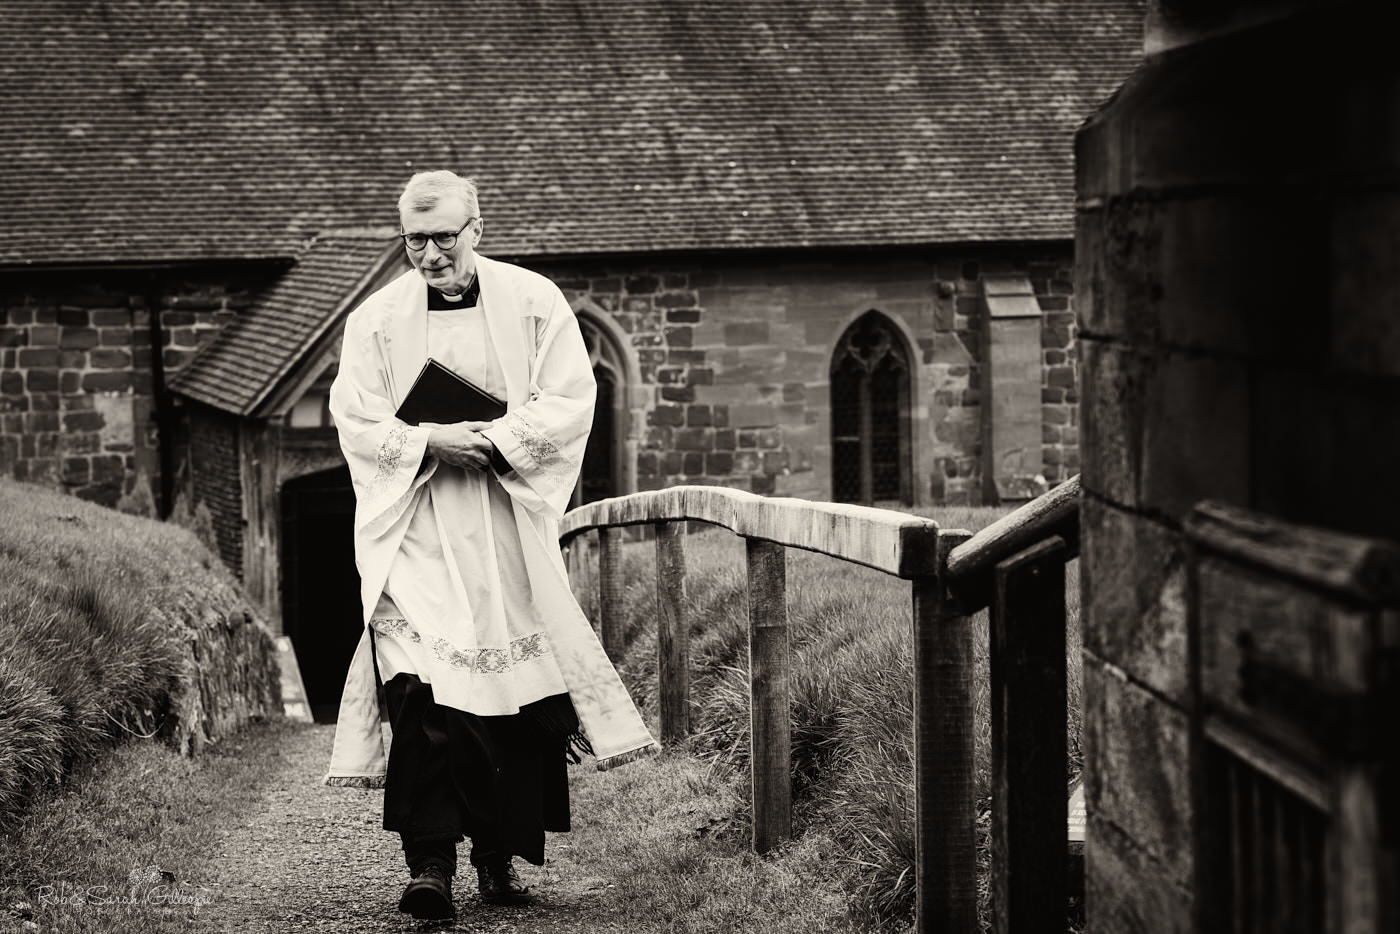 Vicar waits for bride at St Kenelm in Worcestershire